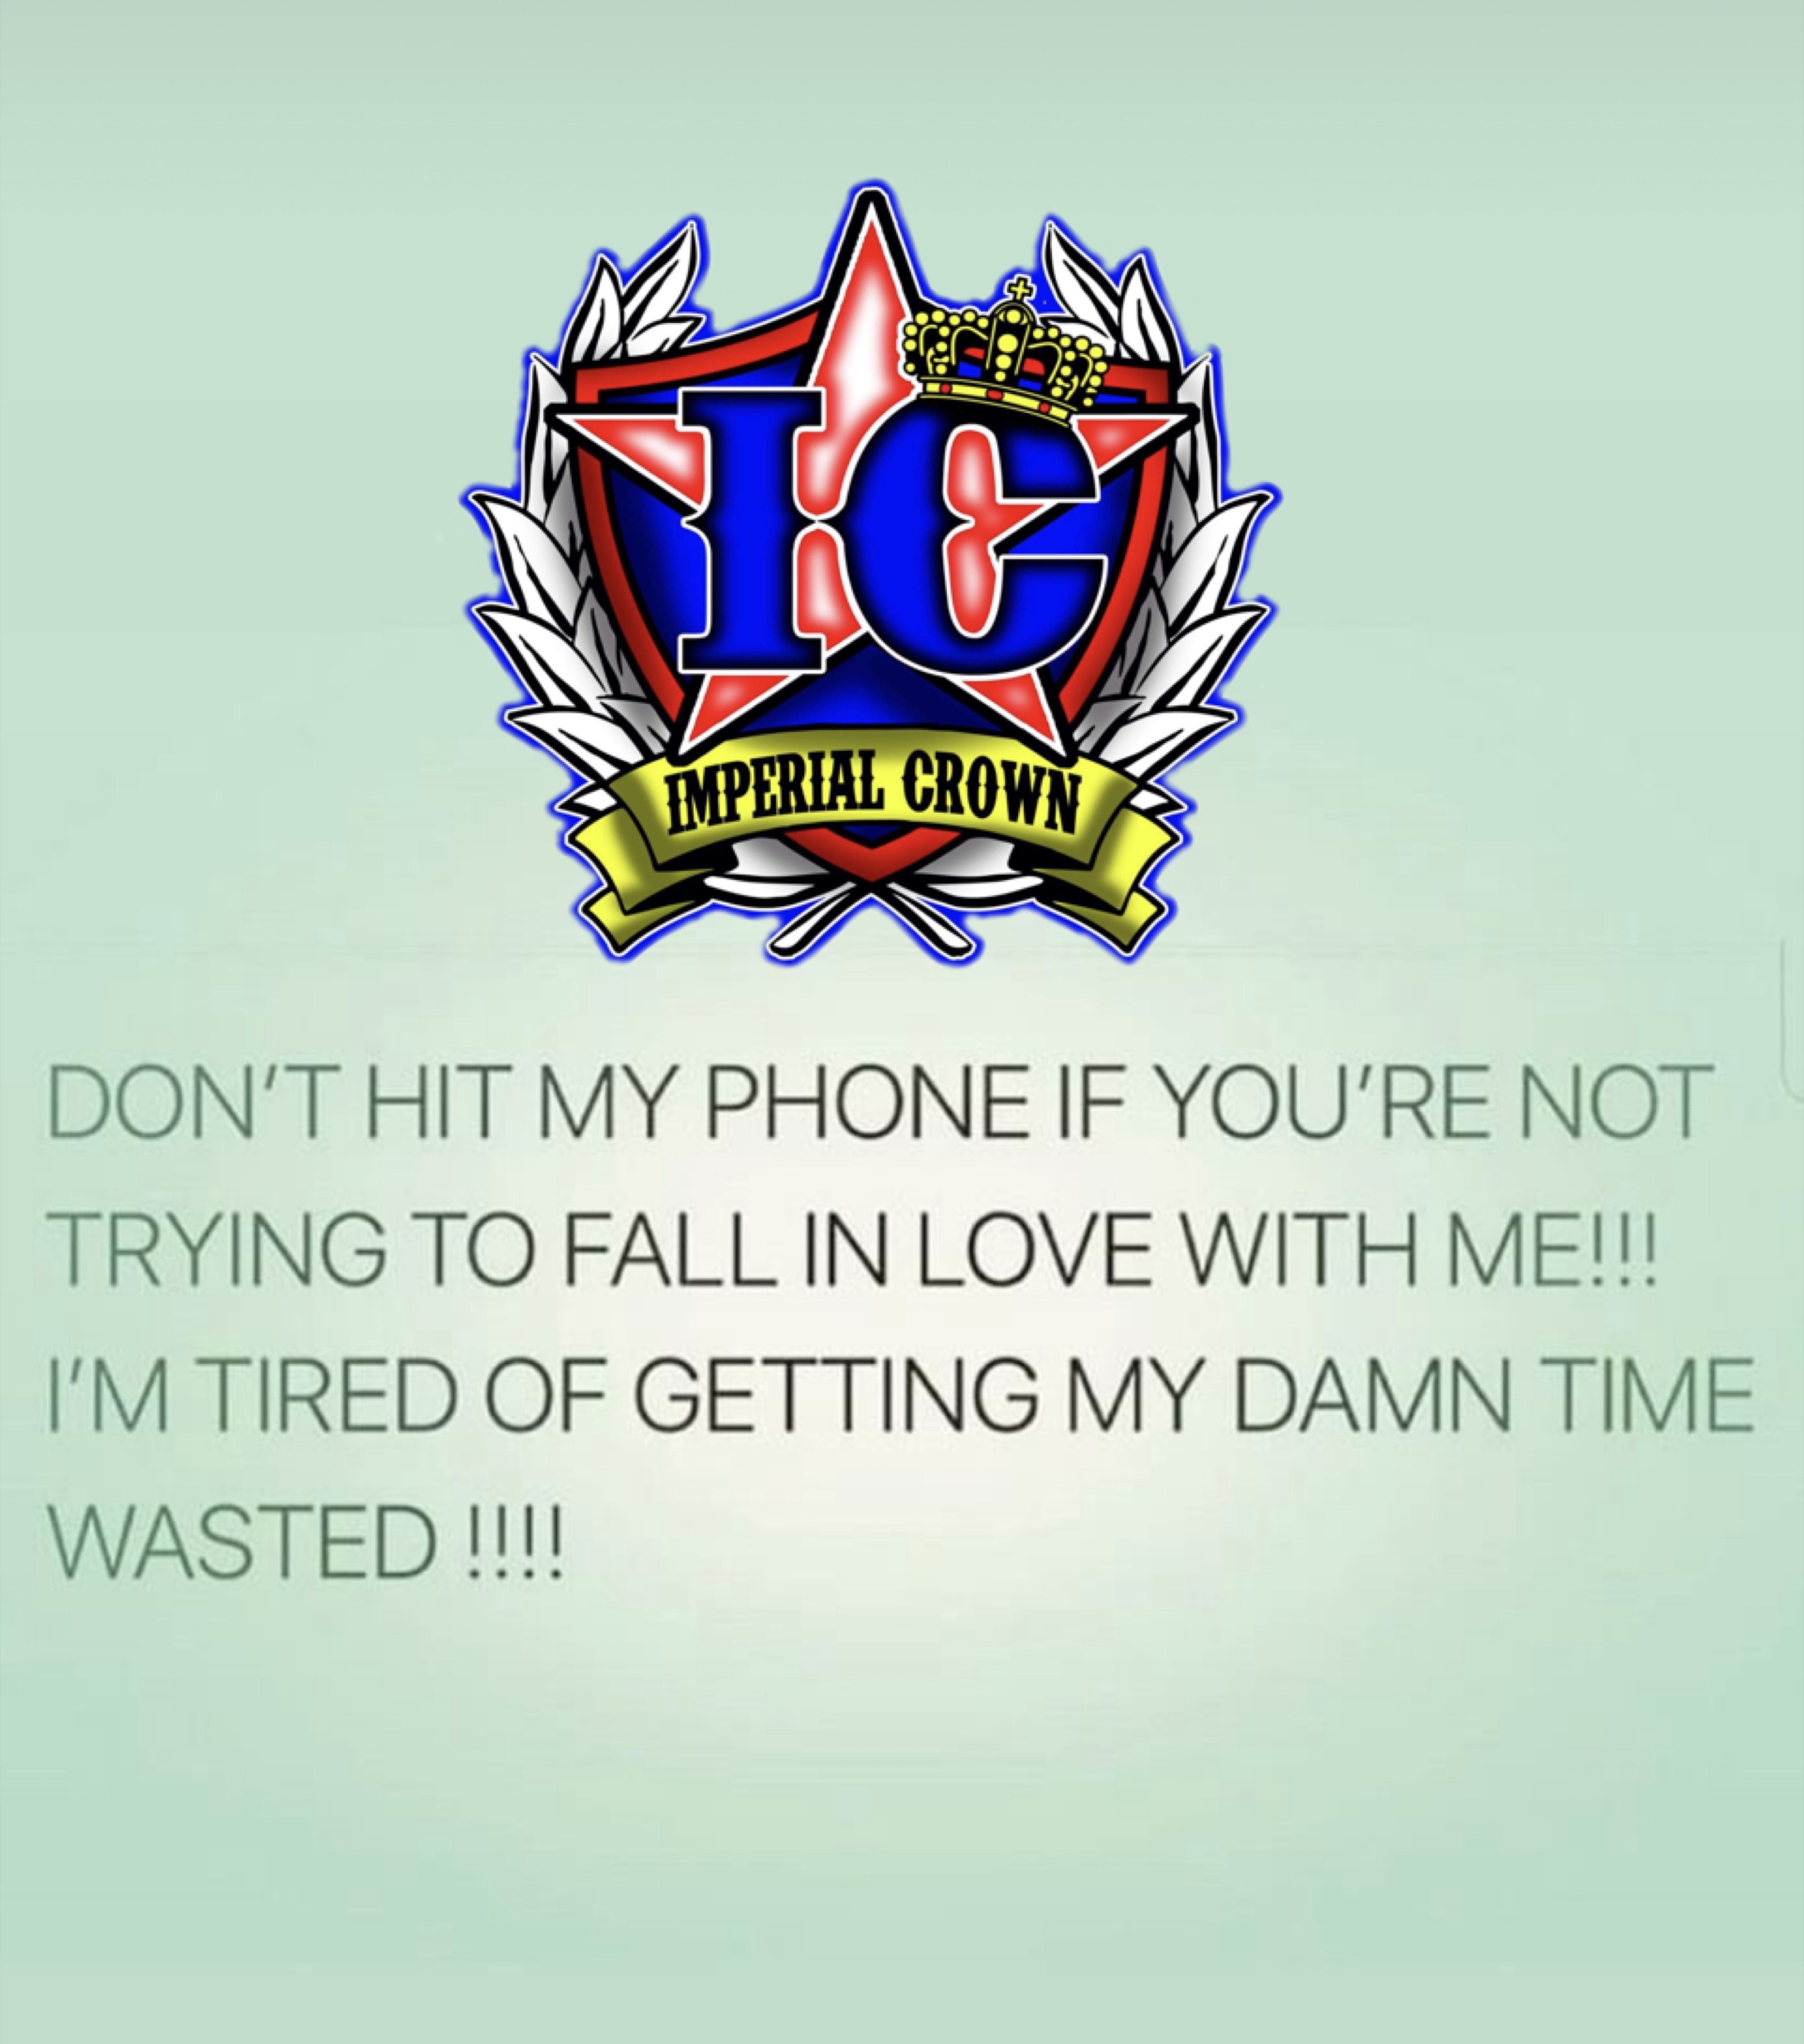 Don't hit my phone if you're not trying to fall in love with me